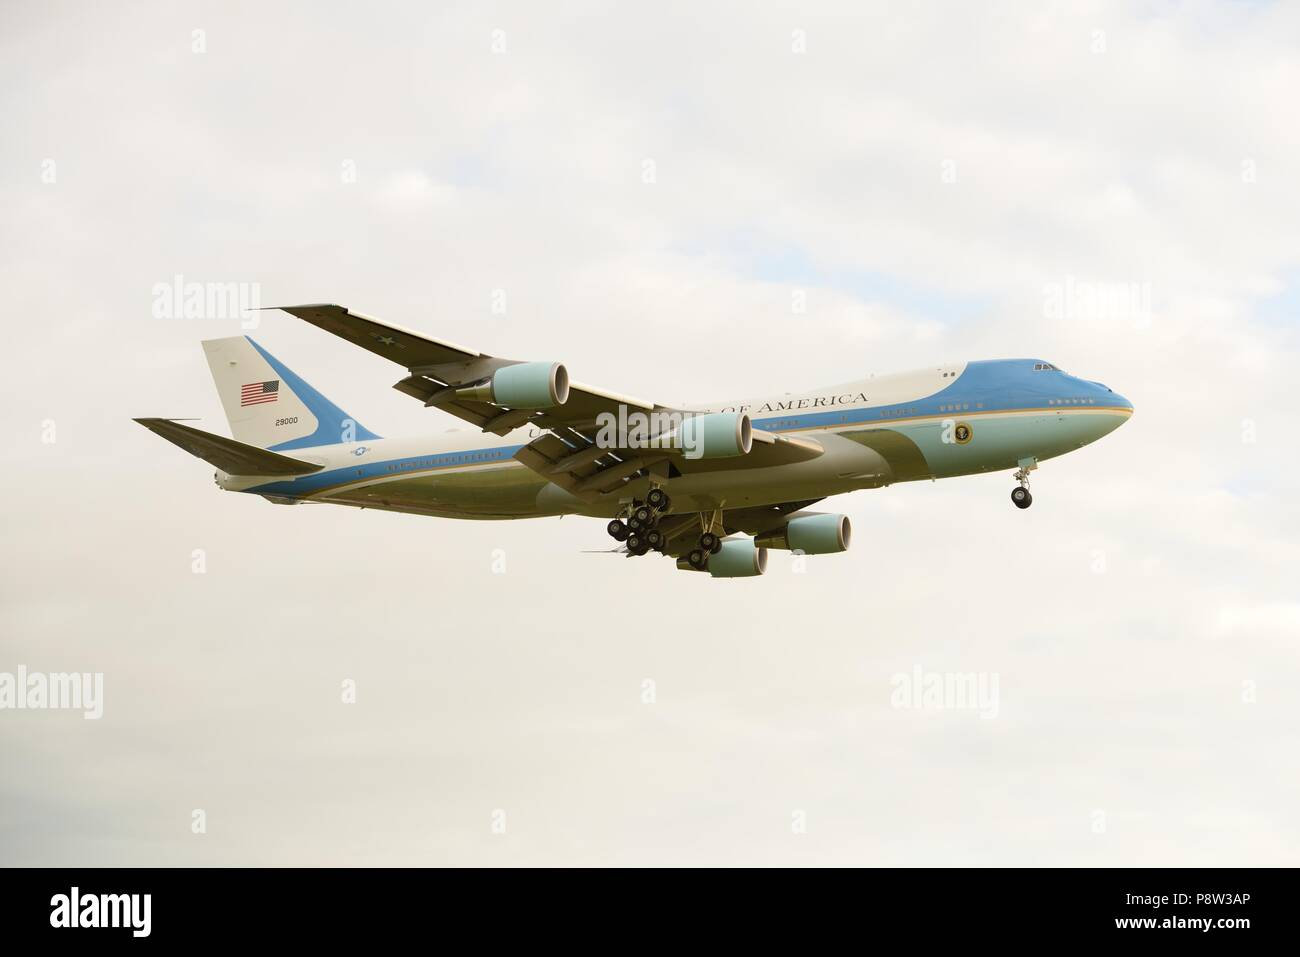 Glasgow, UK, 13th, July, 2018. Glasgow Prestwick Airport, Scotland, UK. United States of America's President Trump arrives in Scotland on Airforce one during a trip to the United Kingdom Stock Photo